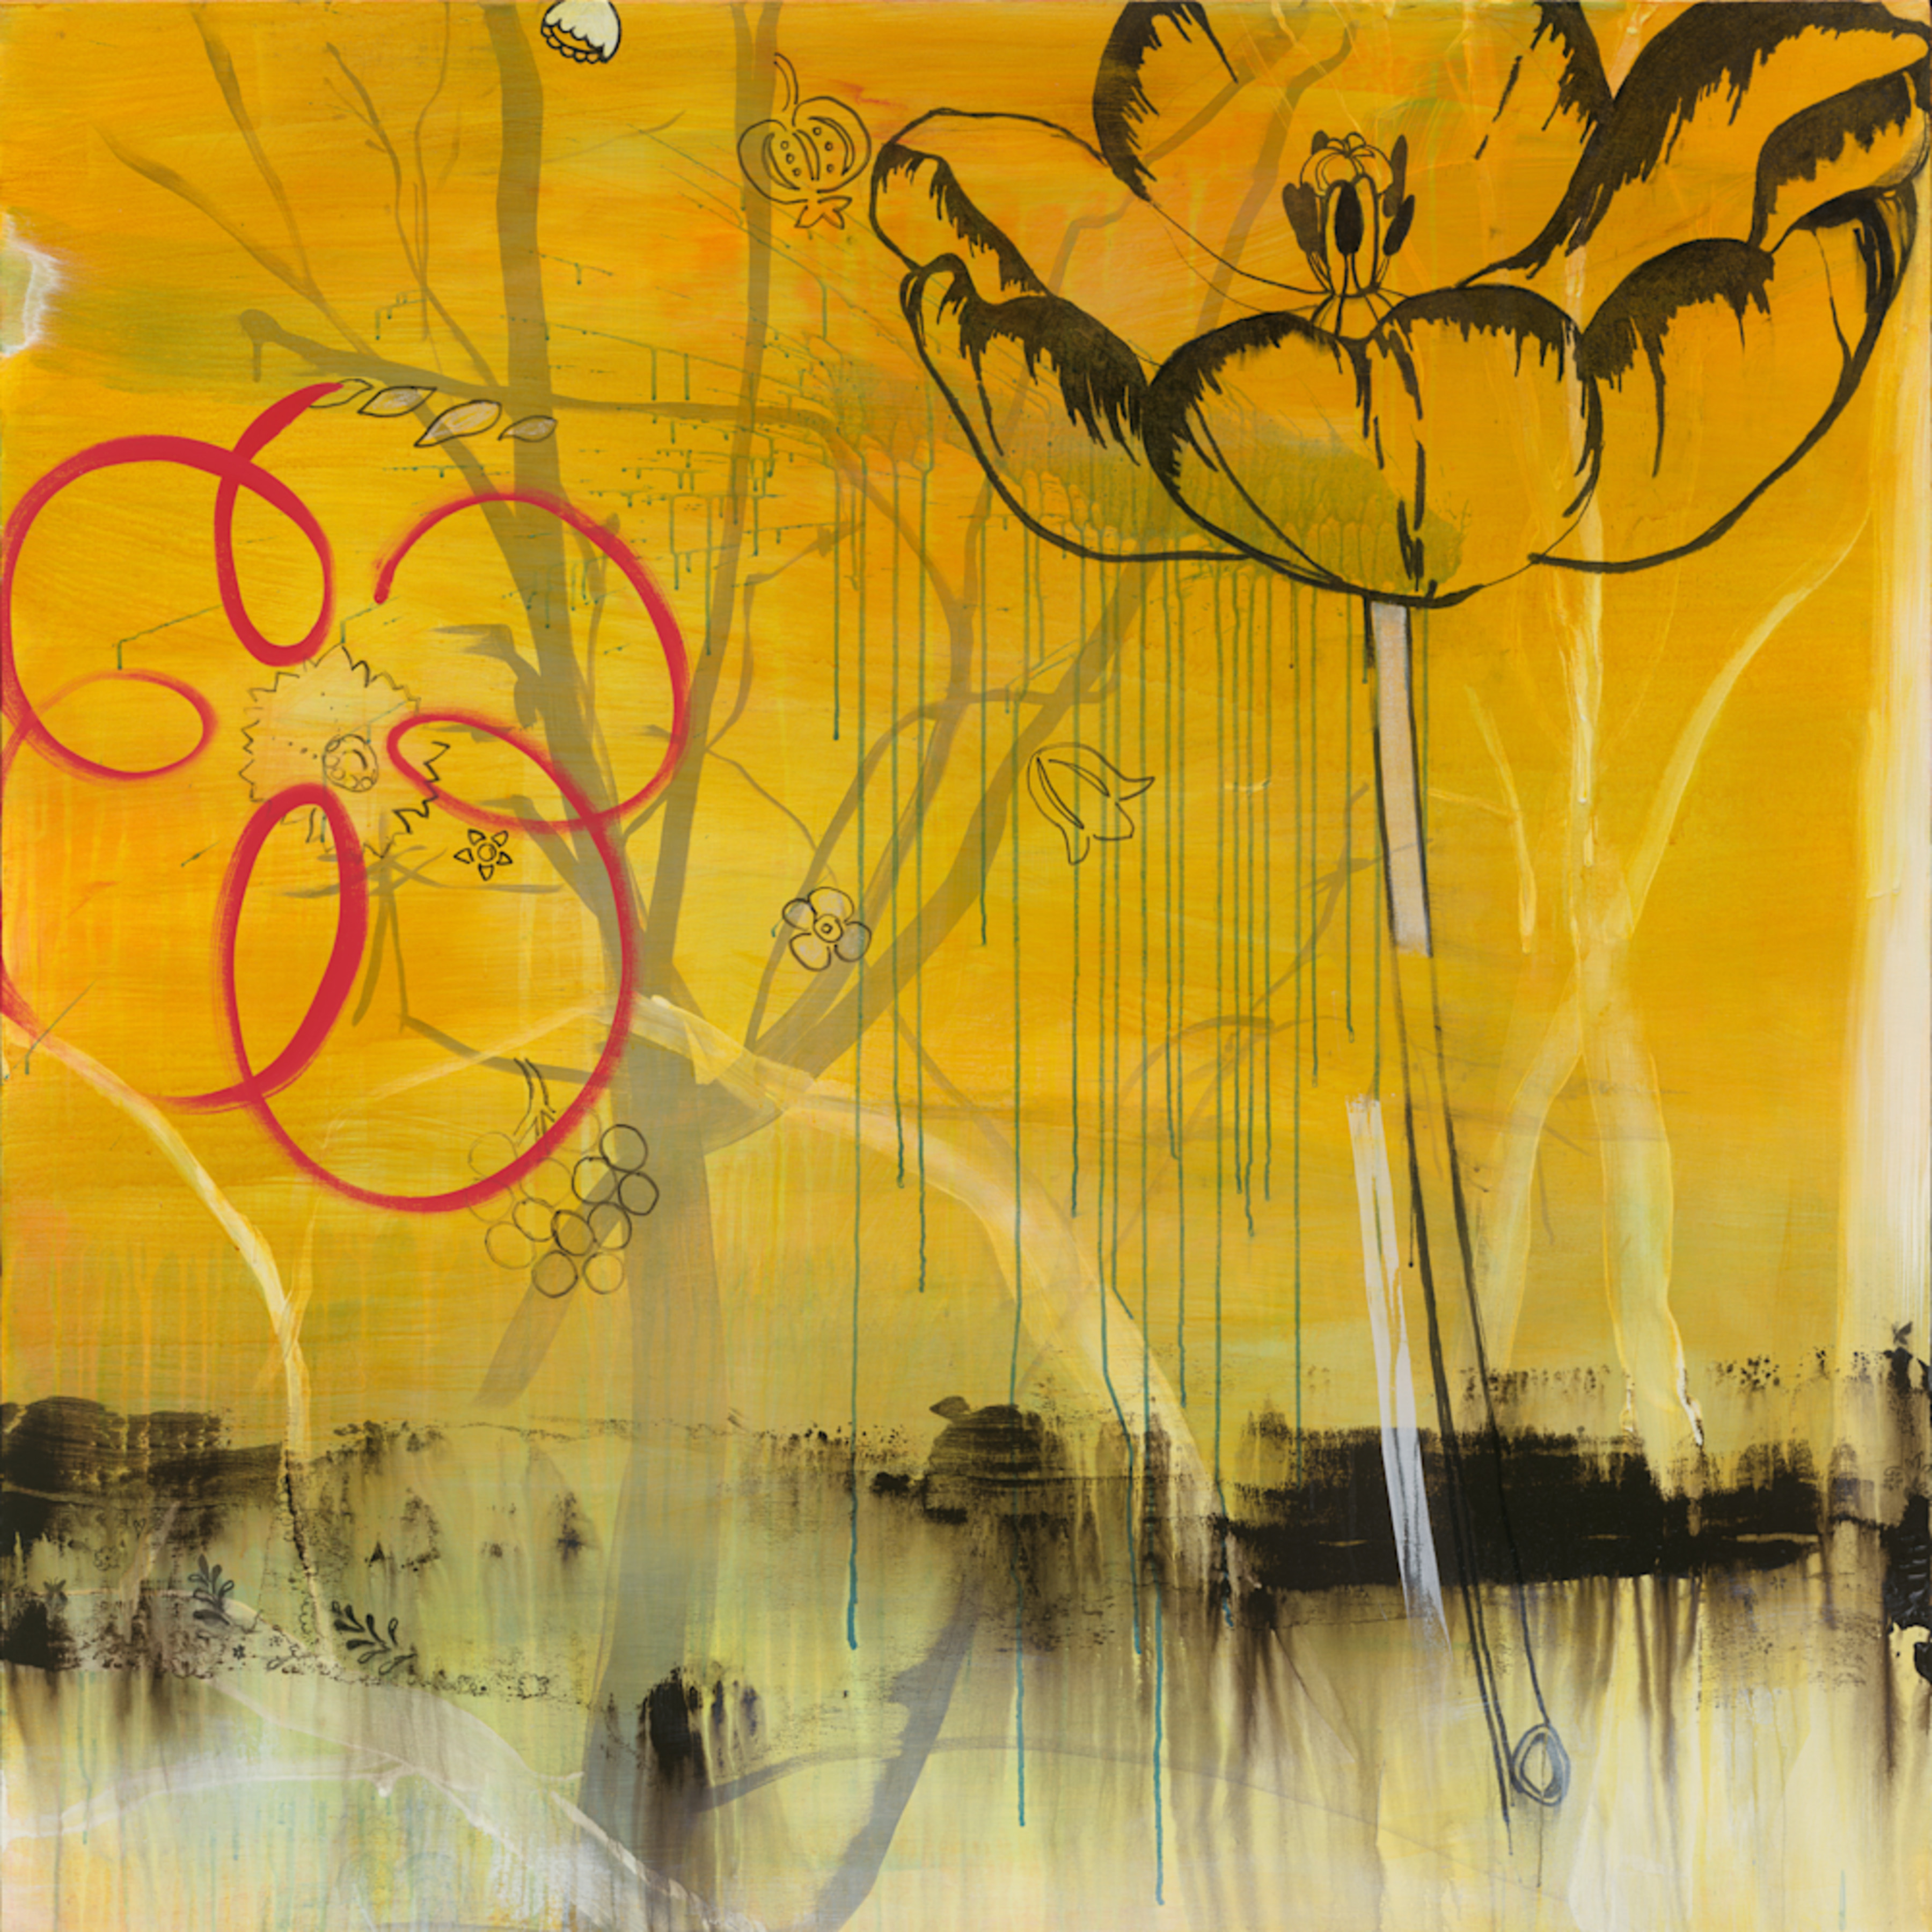 28 skyfield 15 dreaming of pancho villa 54x54 acrylic and charcoal on canvas 2009 jaap mrdobc